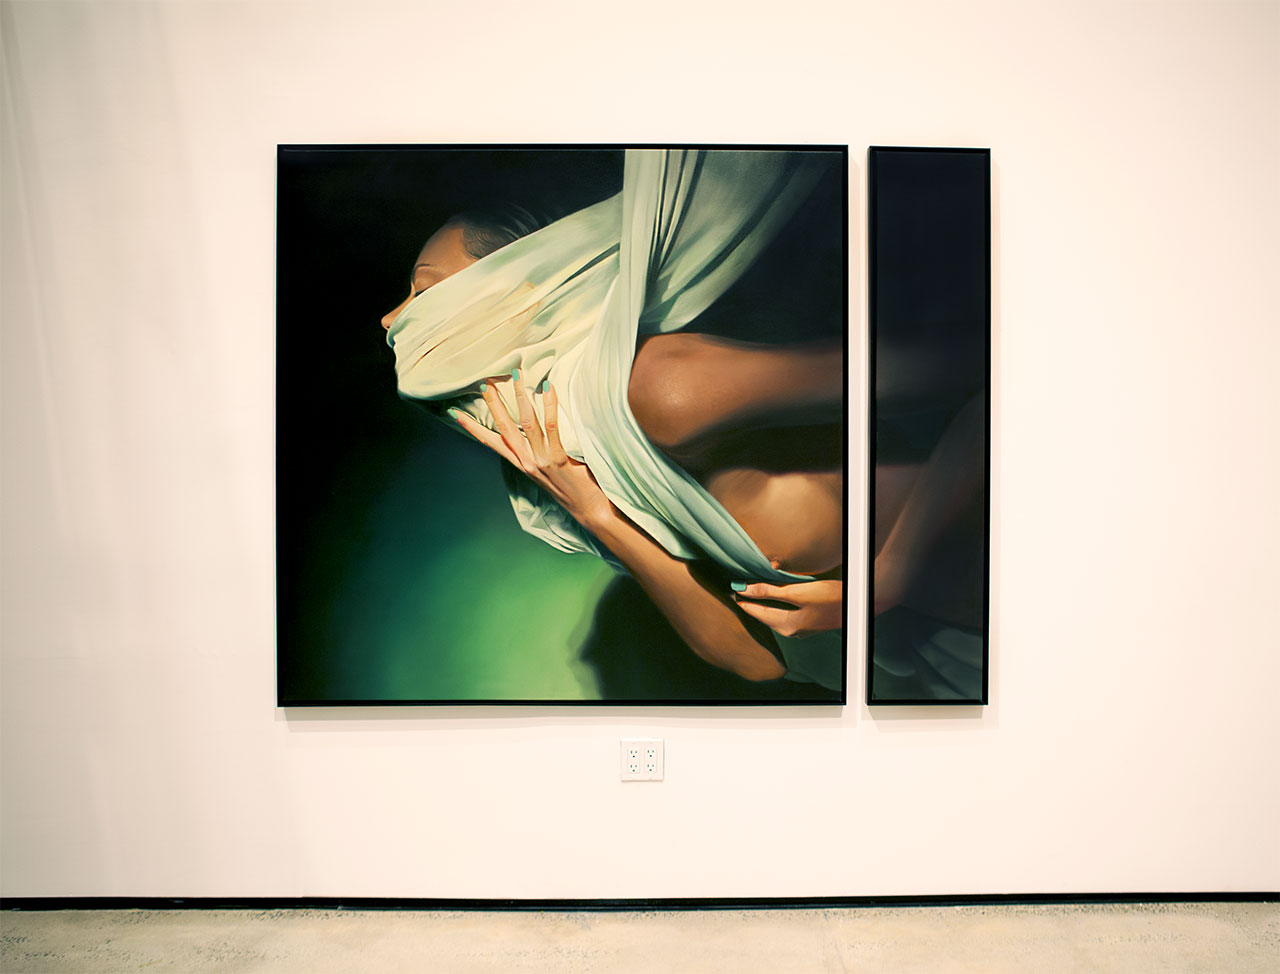 TRANSFORMATION by Mike Dargas. Installation view. Courtesy C24 Gallery and the artist.